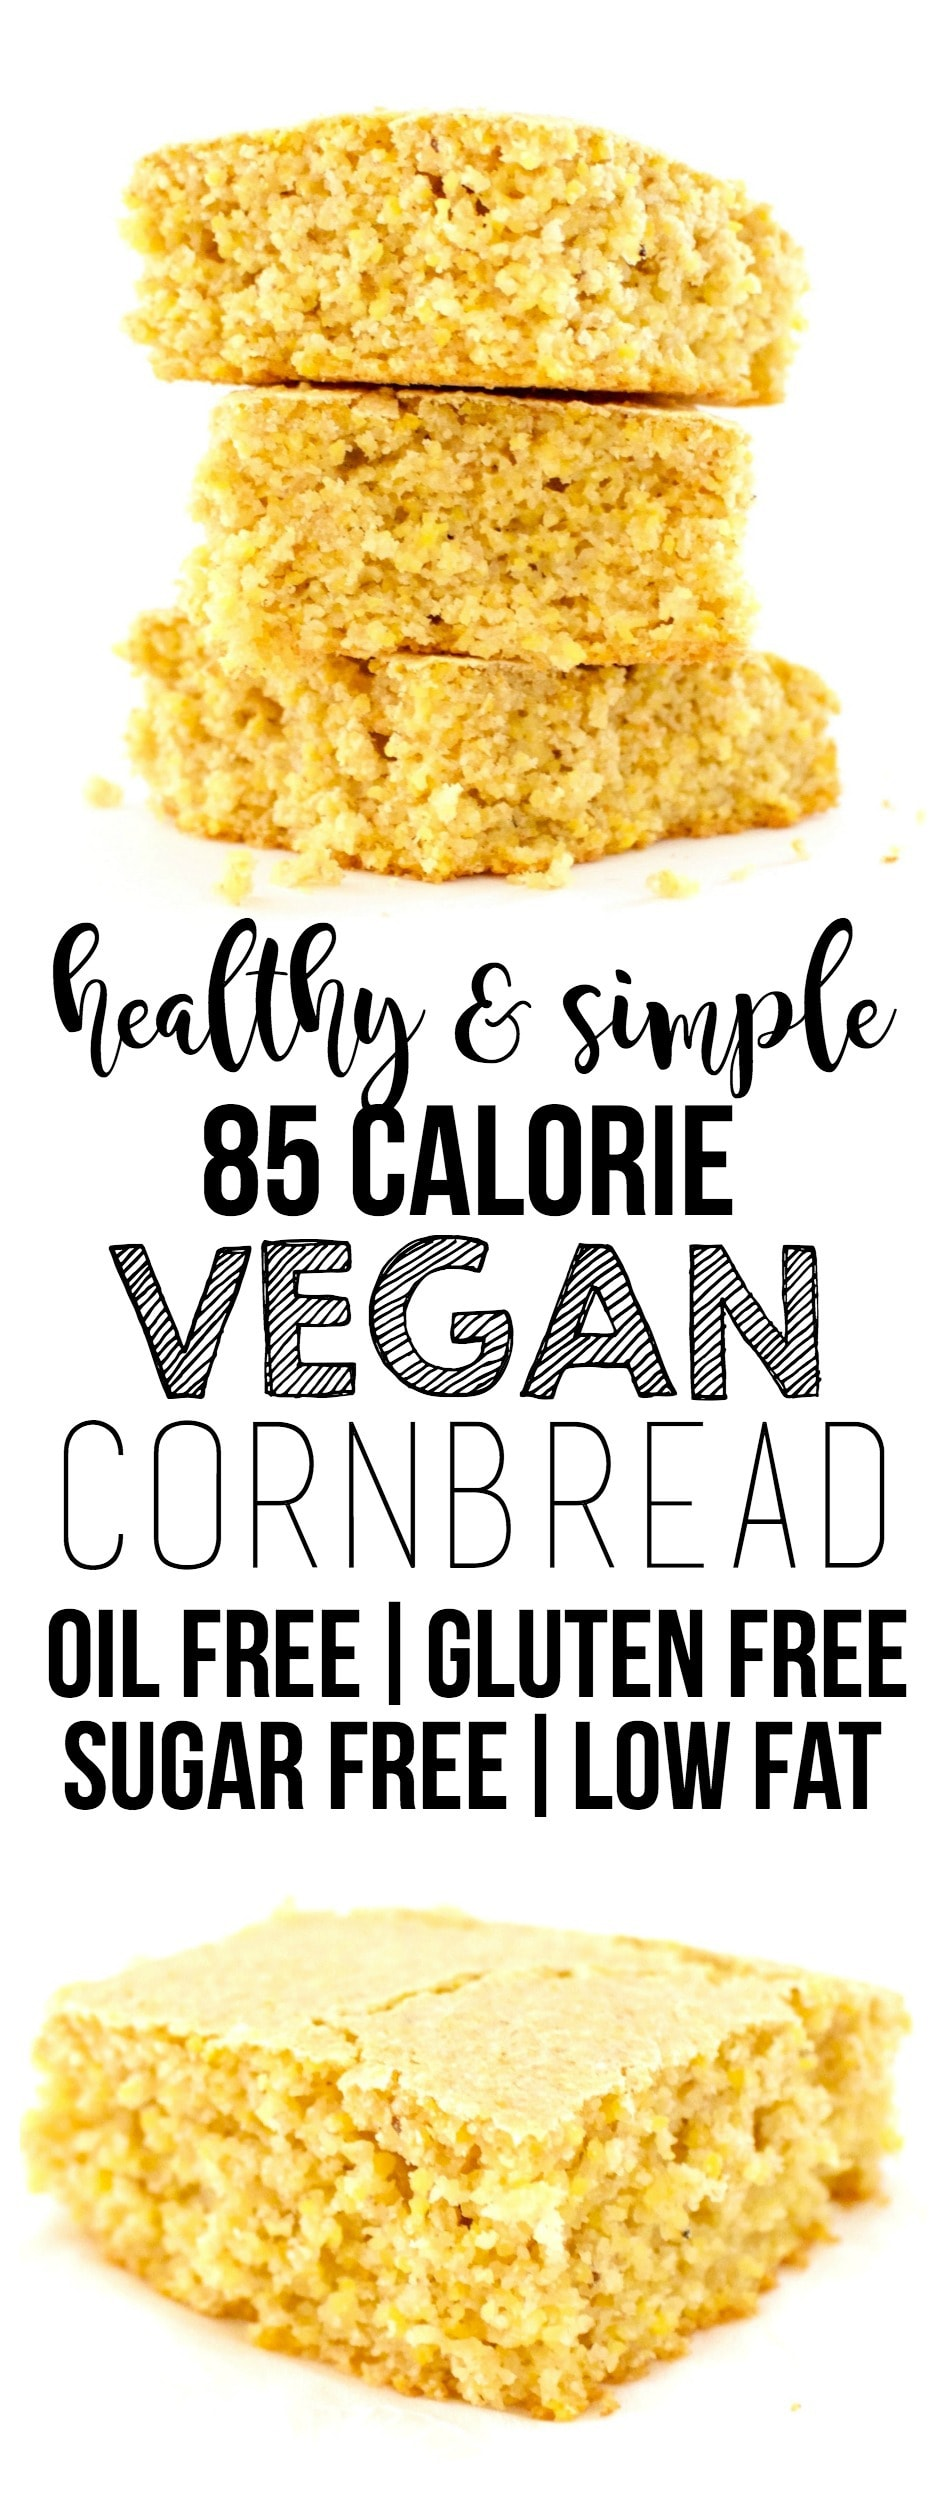 This AMAZING Vegan Cornbread is perfectly fluffy and delicious! It is so easy to make and ready in 30 minutes or less. It's also gluten-free, oil-free, sugar-free, and low-calorie - only 85 calories a slice!